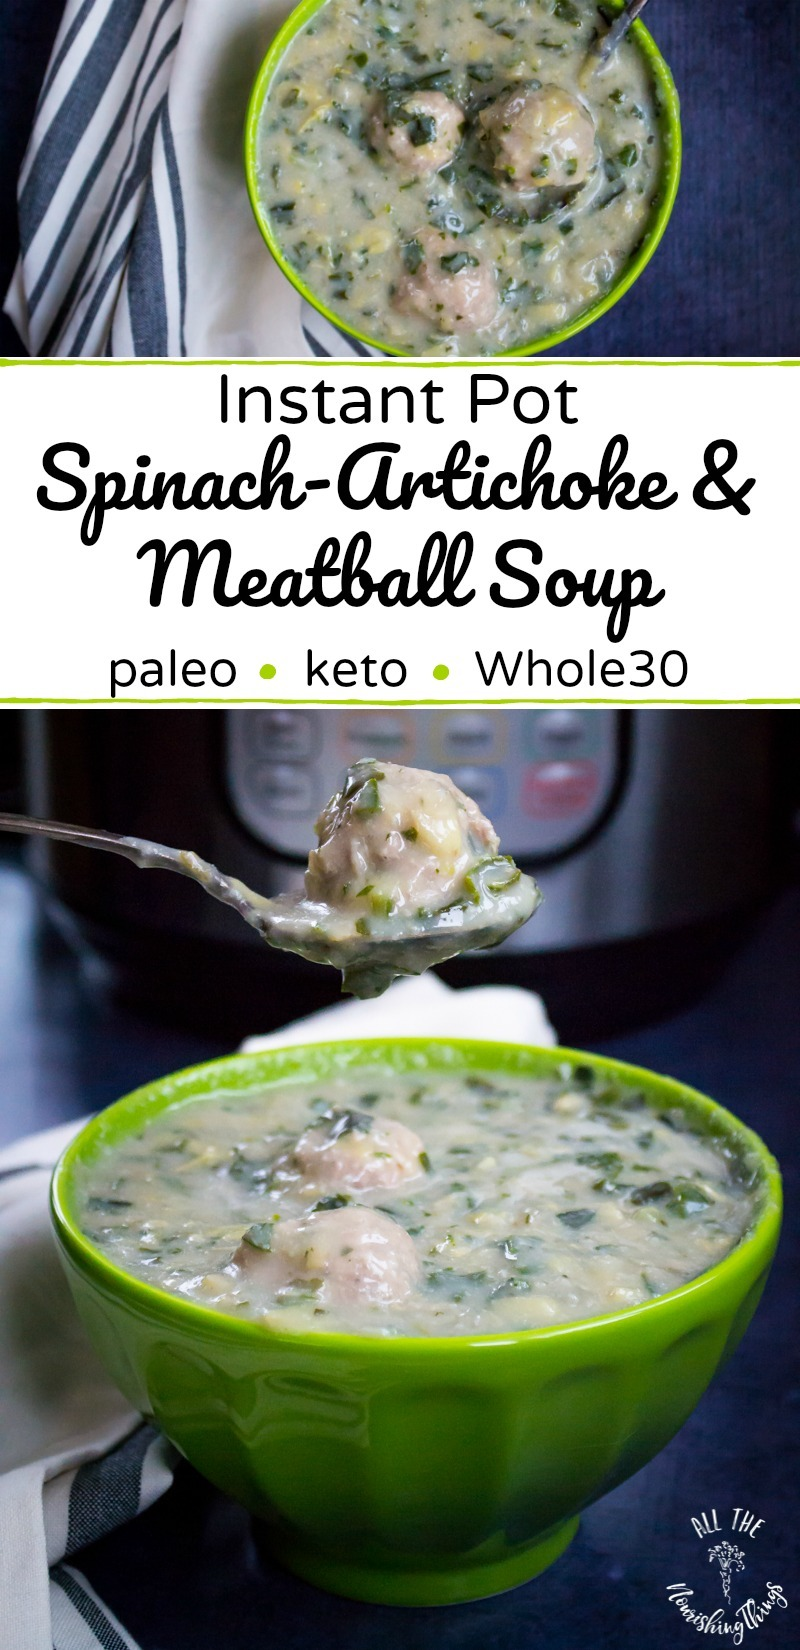 collage of 2 images of instant pot spinach artichoke meatball soup in green bowl with text overlay